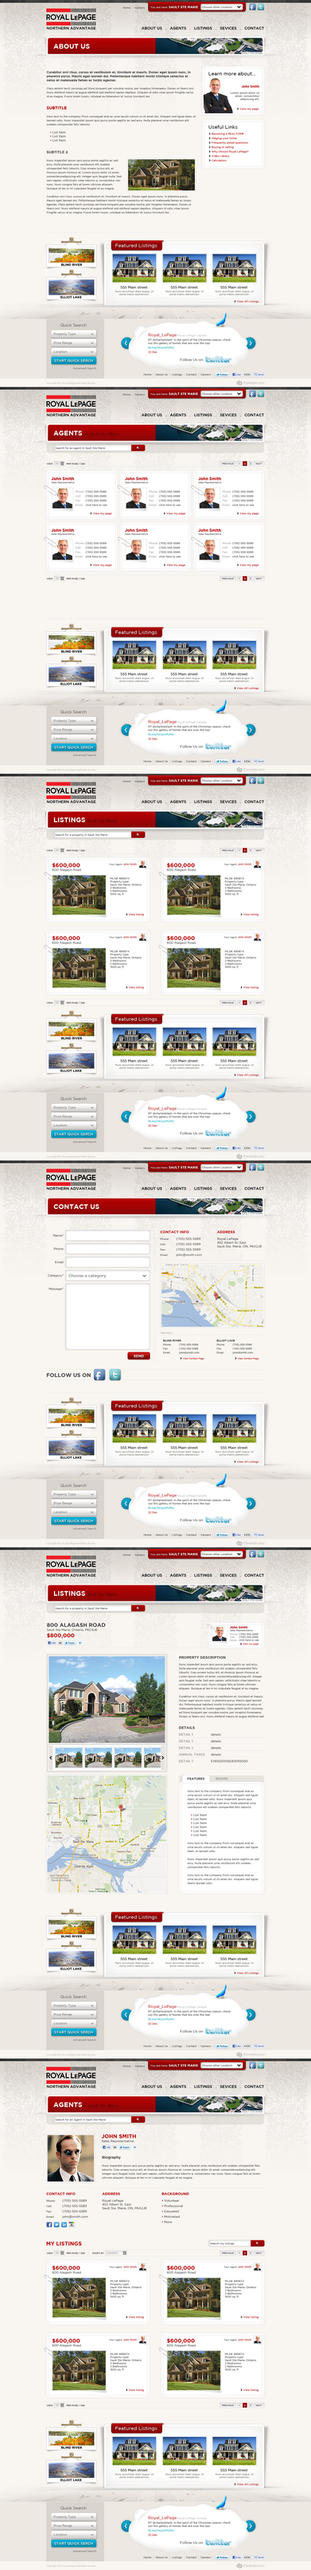 Web Design: Royal LePage by VictoryDesign